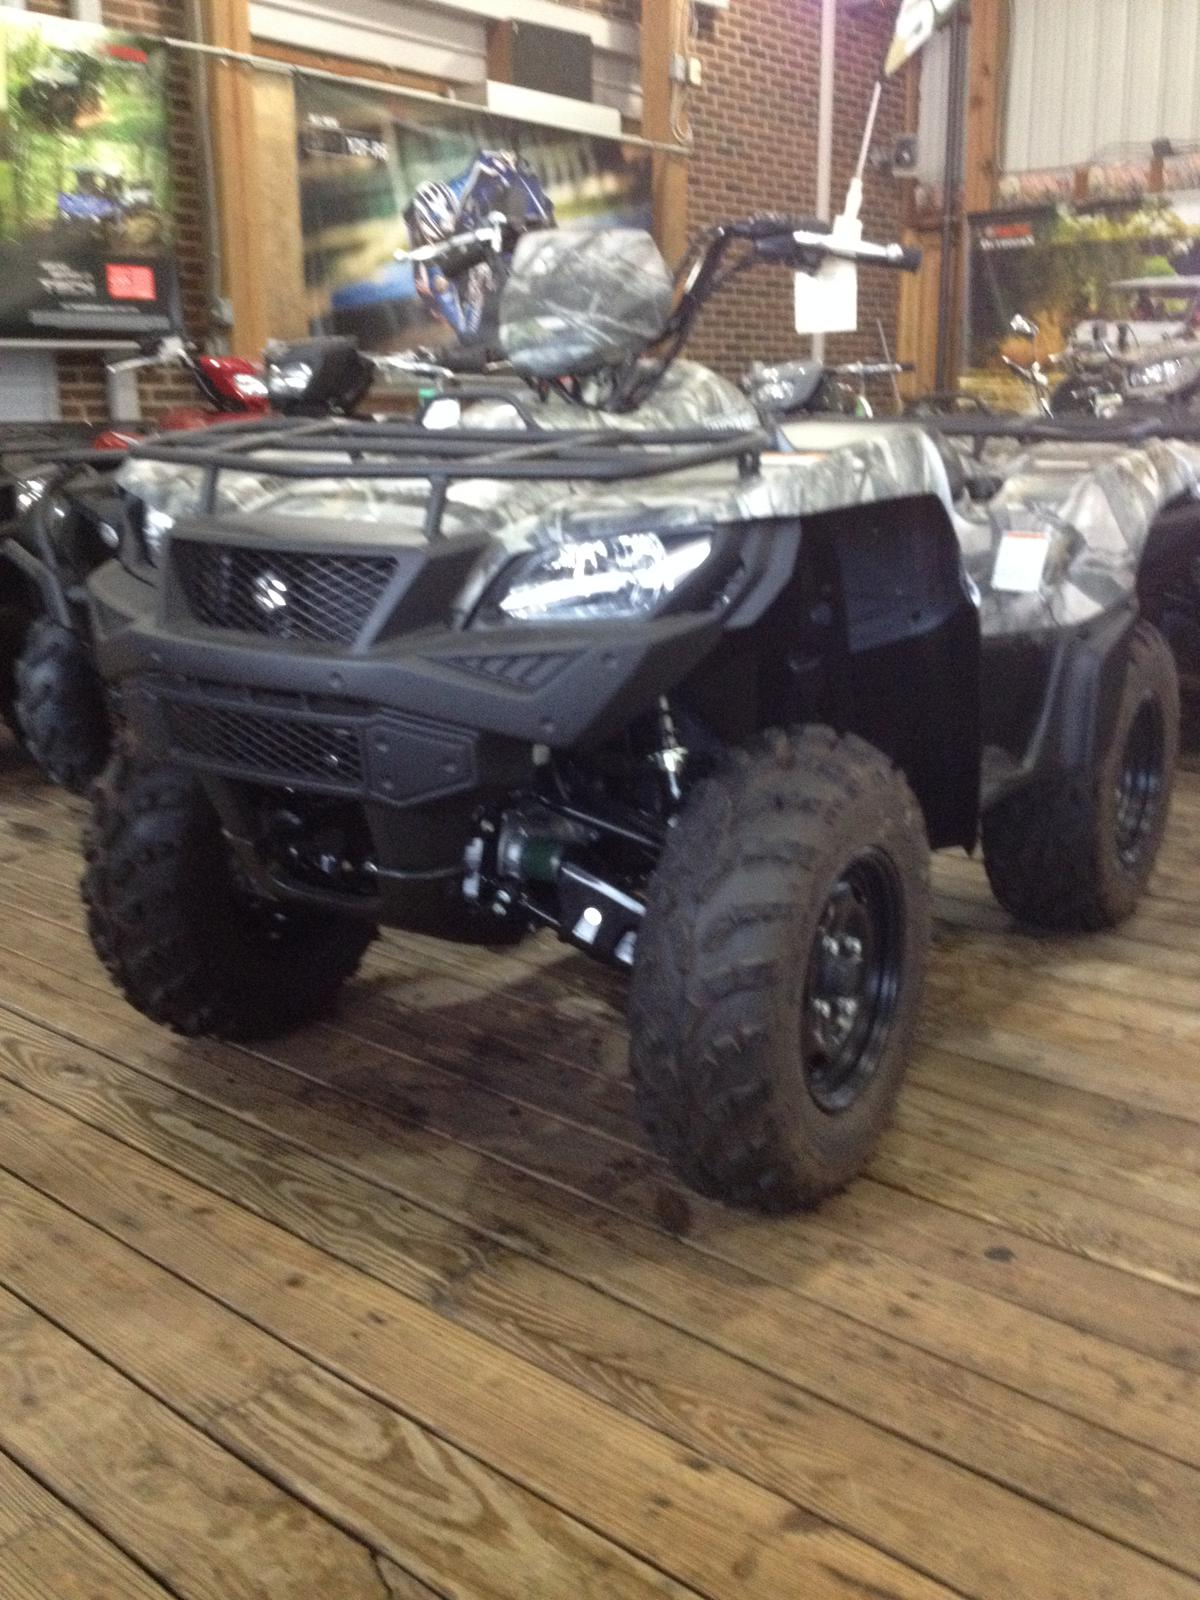 2017 Suzuki KINGQUAD 500AXI POWE for sale 39515